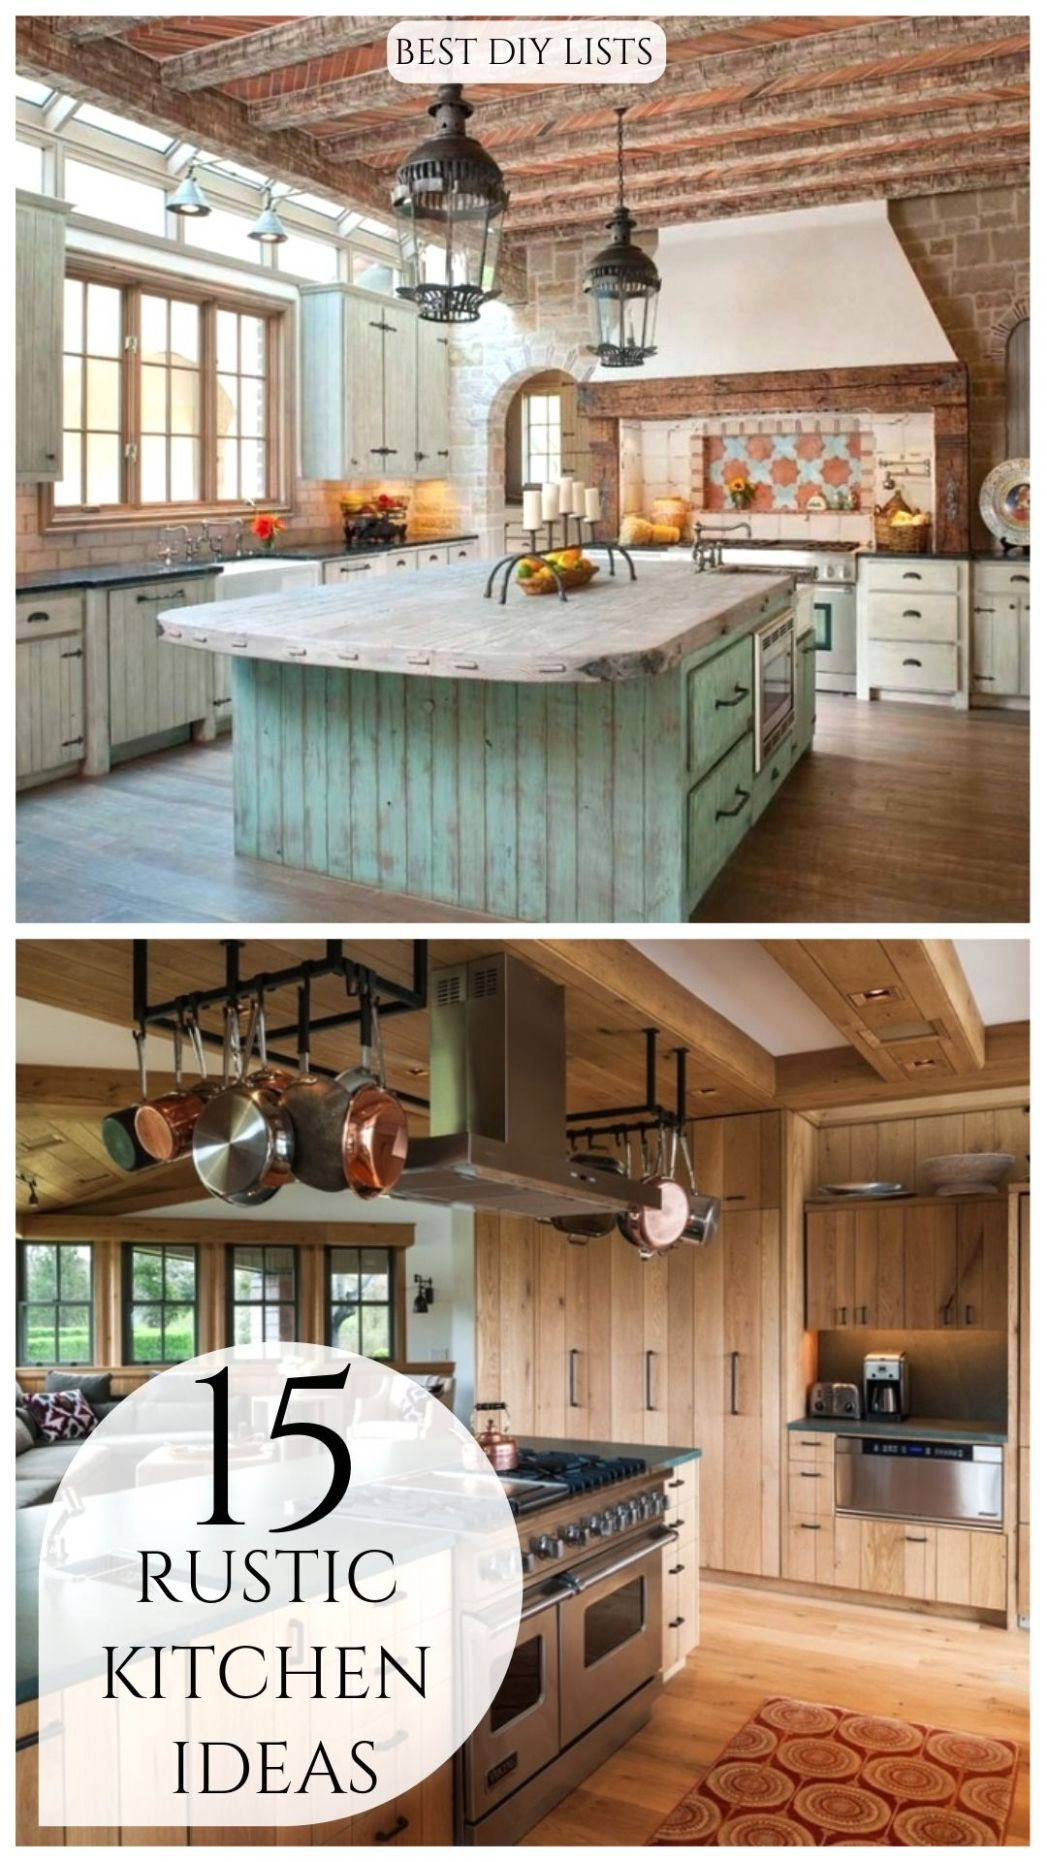 Rustic Kitchen Ideas in 11 | Rustic kitchen decor, Rustic ..